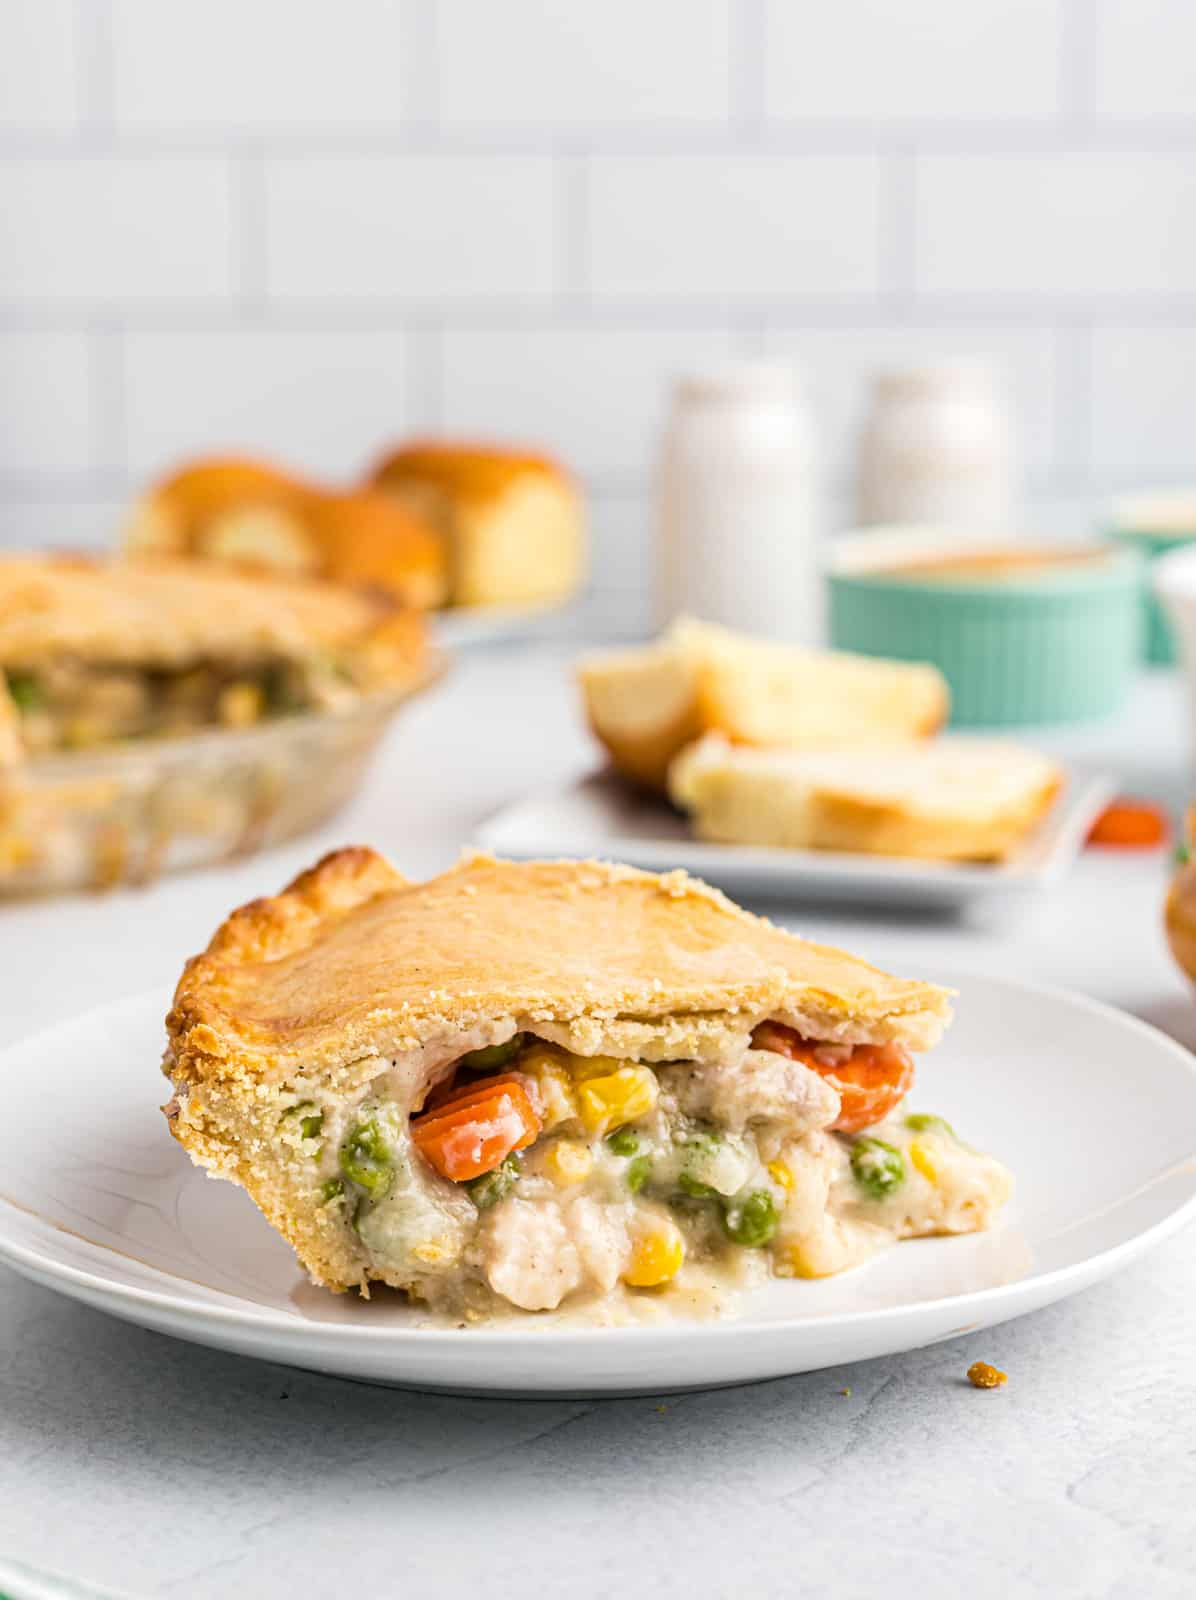 Slice of Homemade Chicken Pot Pie on white plate